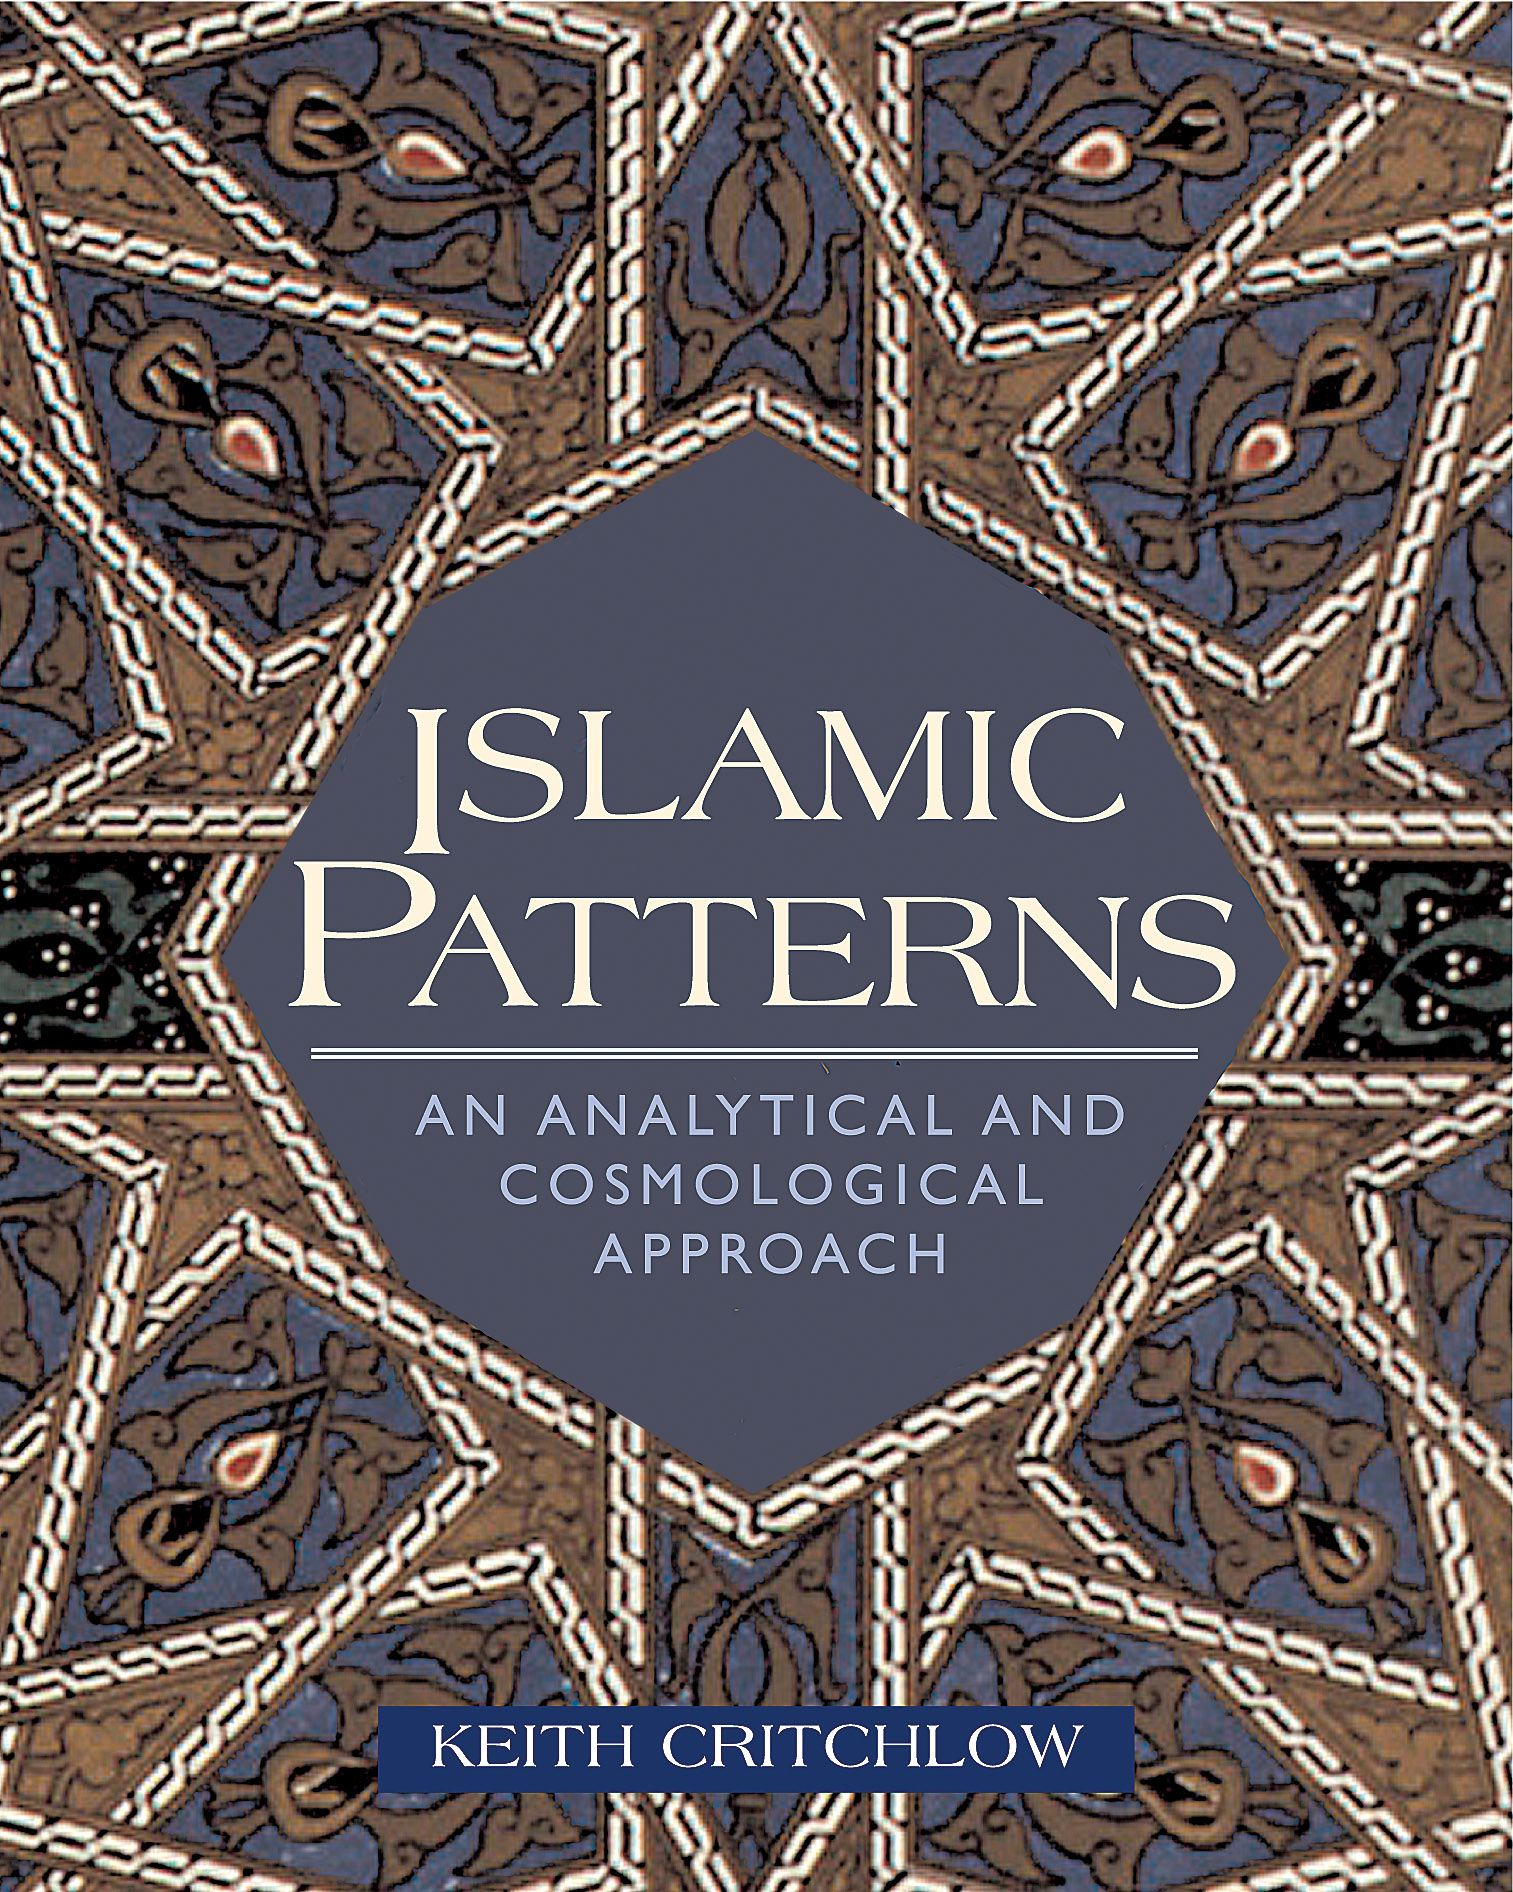 Book Cover Design Arabic : Islamic patterns book by keith critchlow official